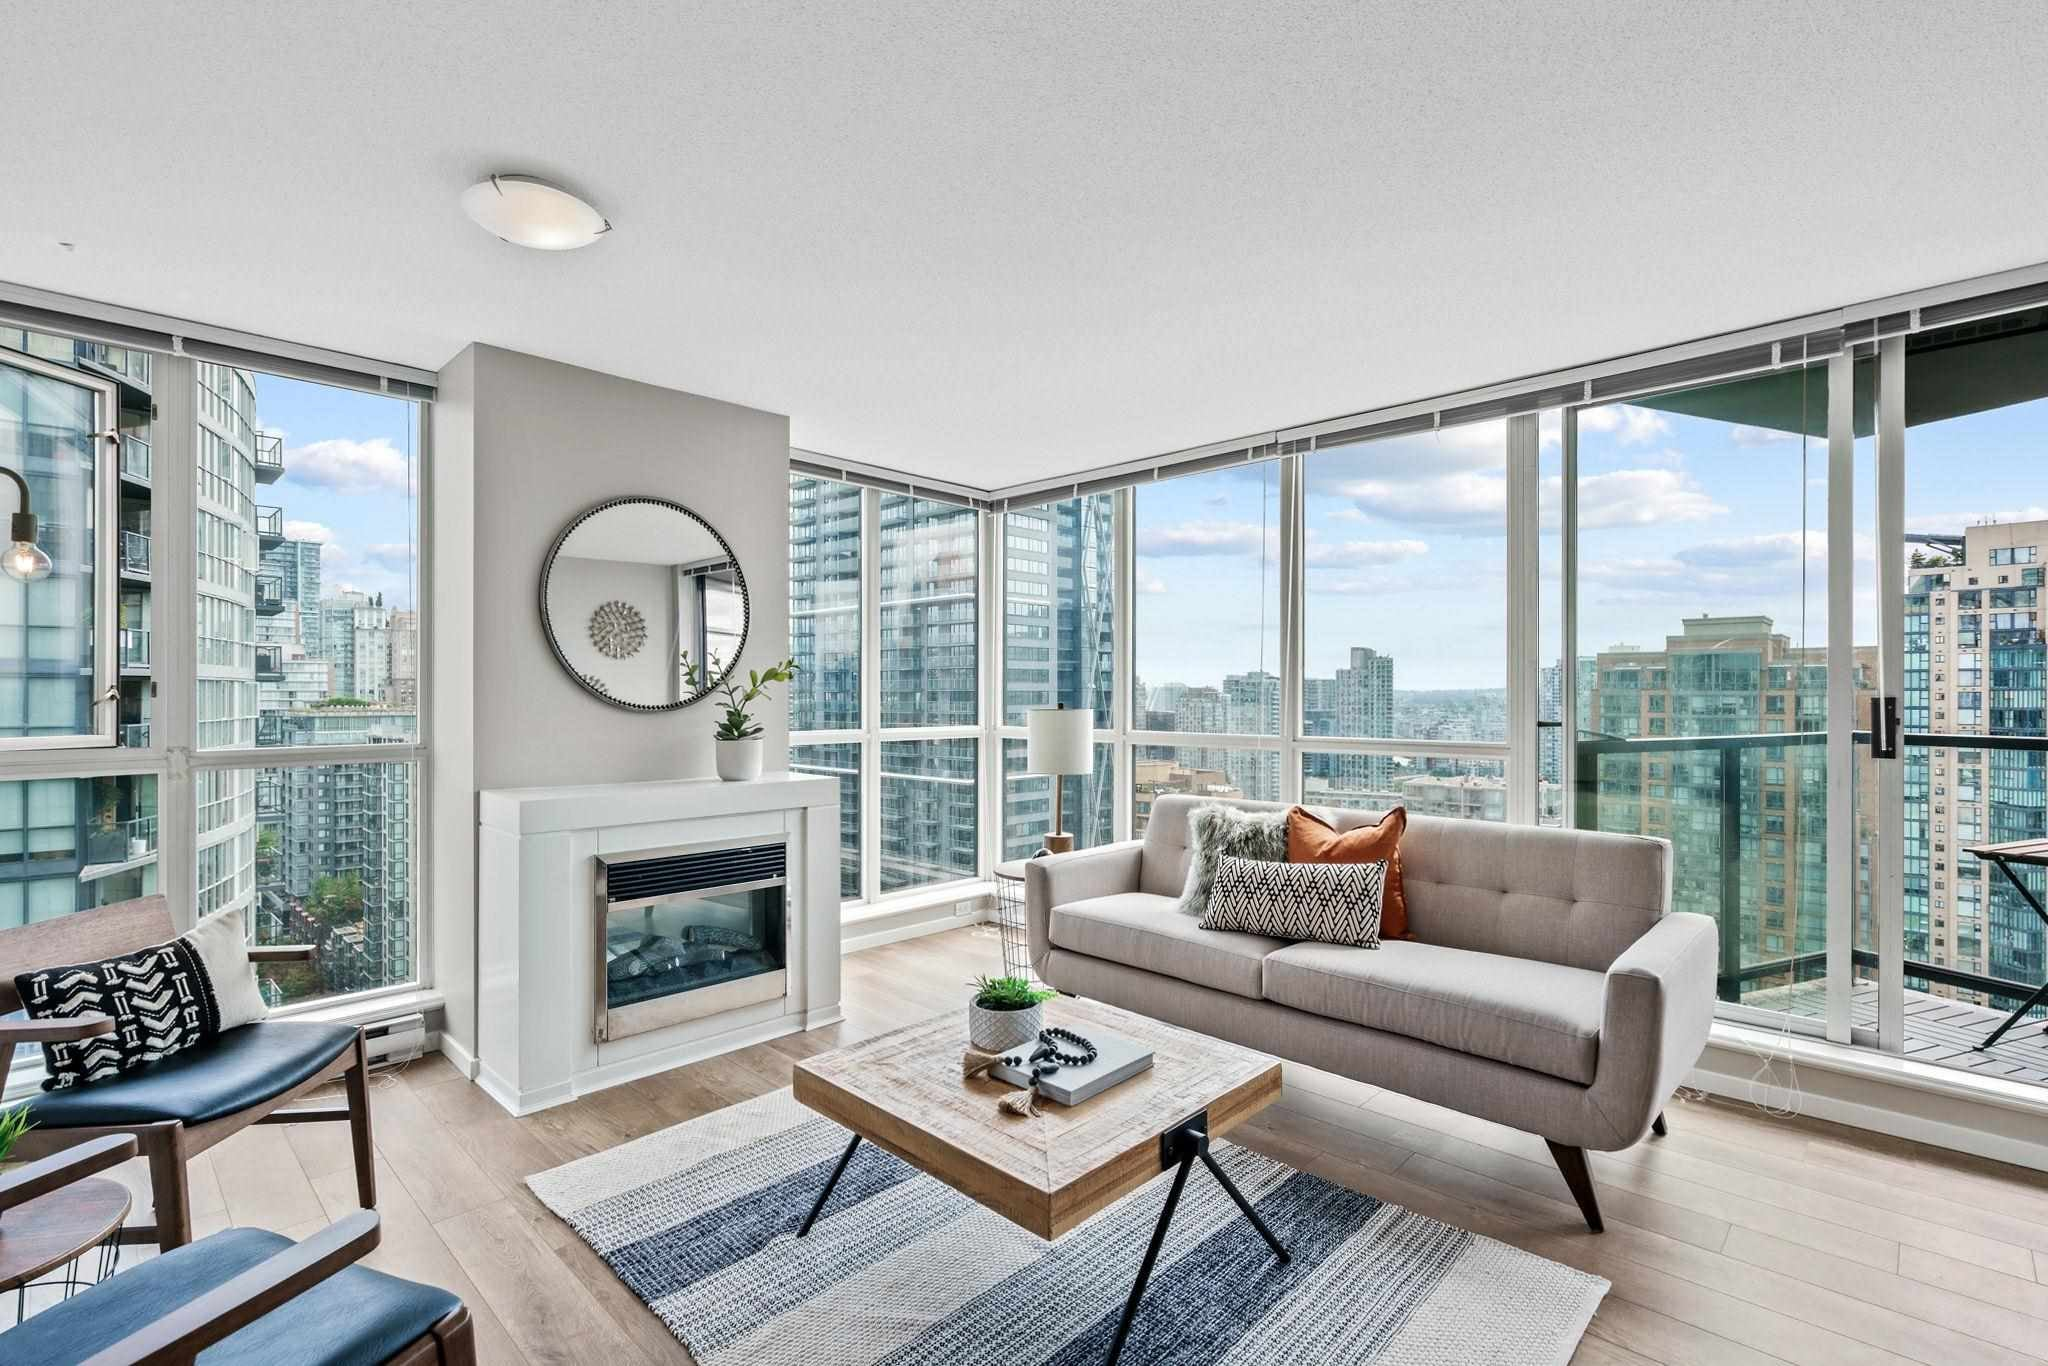 2104 1199 SEYMOUR STREET - Downtown VW Apartment/Condo for sale, 2 Bedrooms (R2601166) - #1